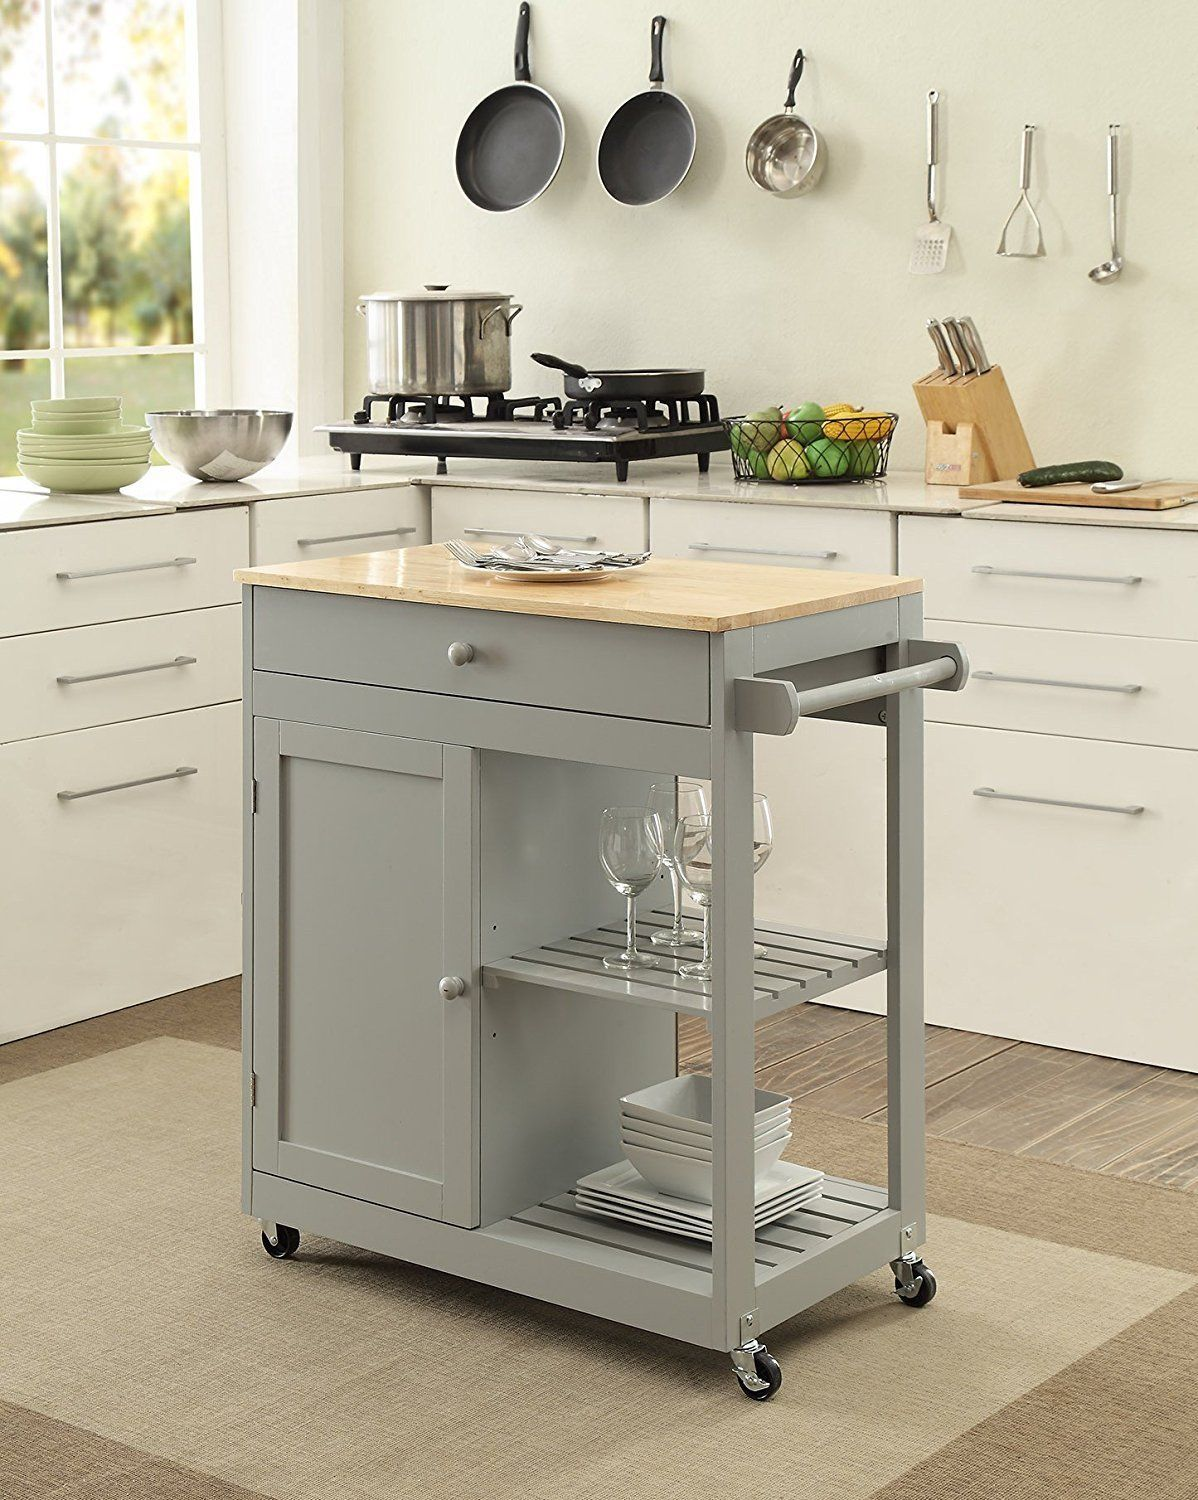 KITCHEN ISLAND On Wheels Mobile Dining Room Storage Butcher Block